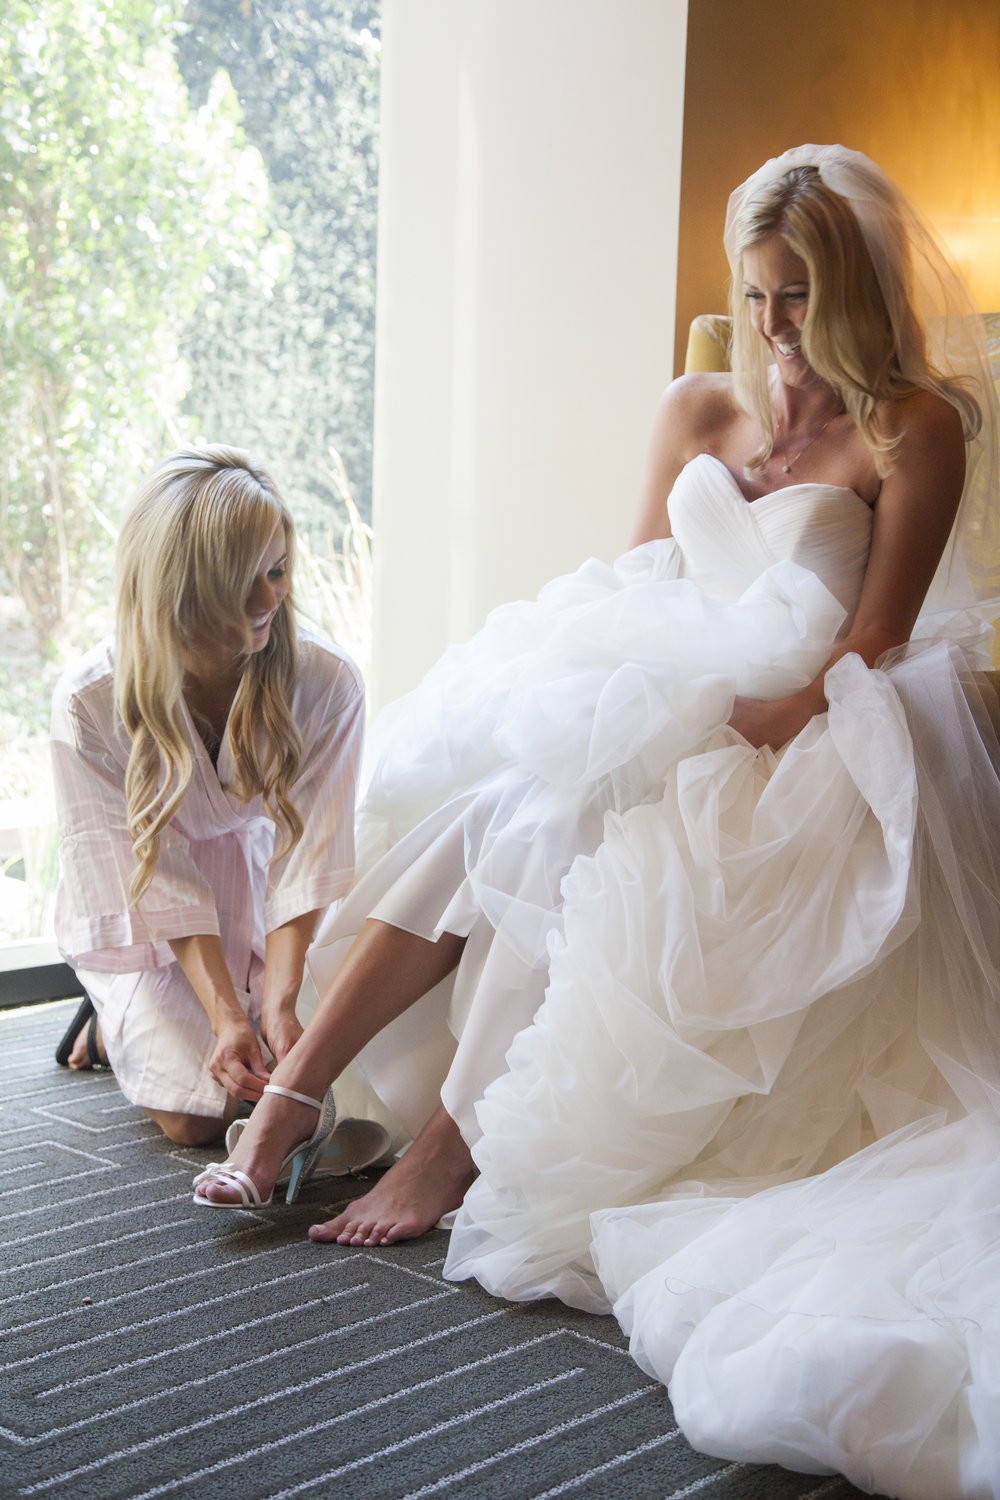 The bride's mother is helping her put on her wedding shoes.